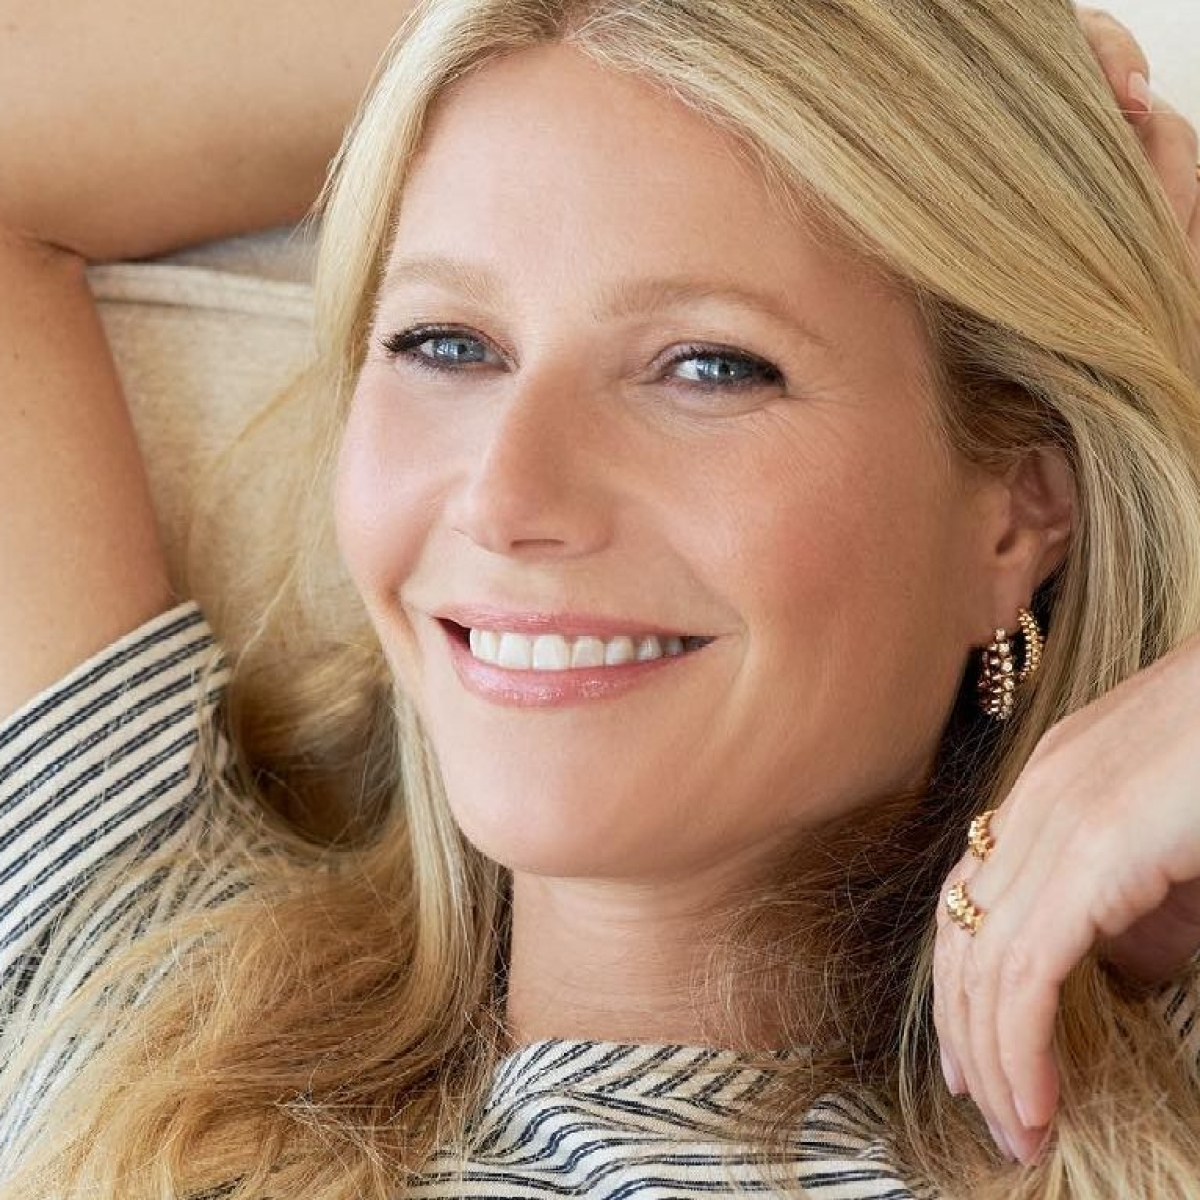 'Iron Man' actress Gwyneth Paltrow under fire for claiming COVID-19 can be treated with kimchi and kombucha